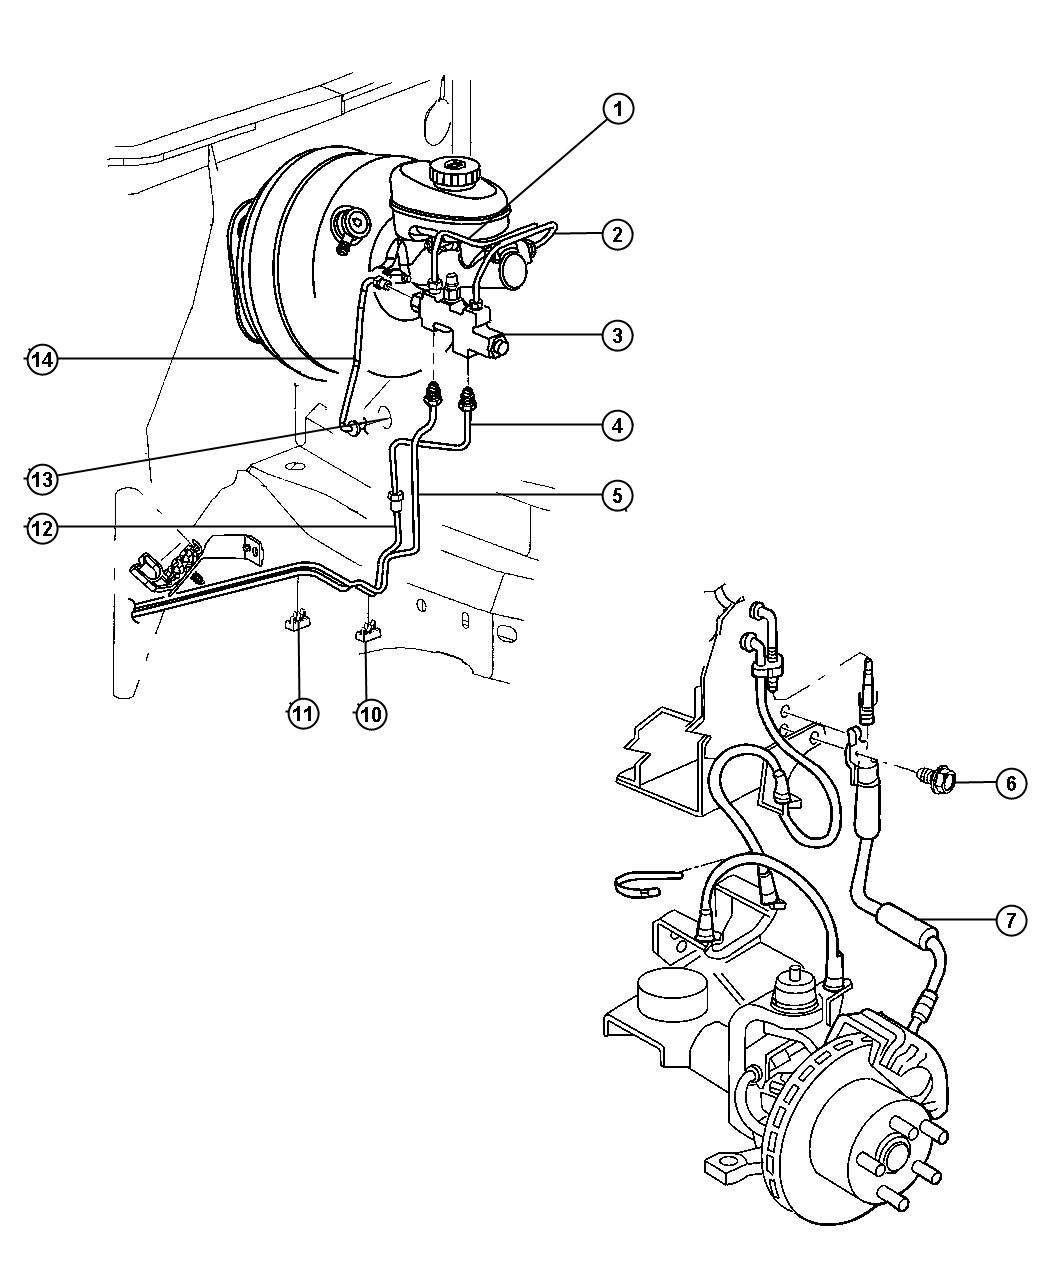 1983 dodge d150 fuse box diagram